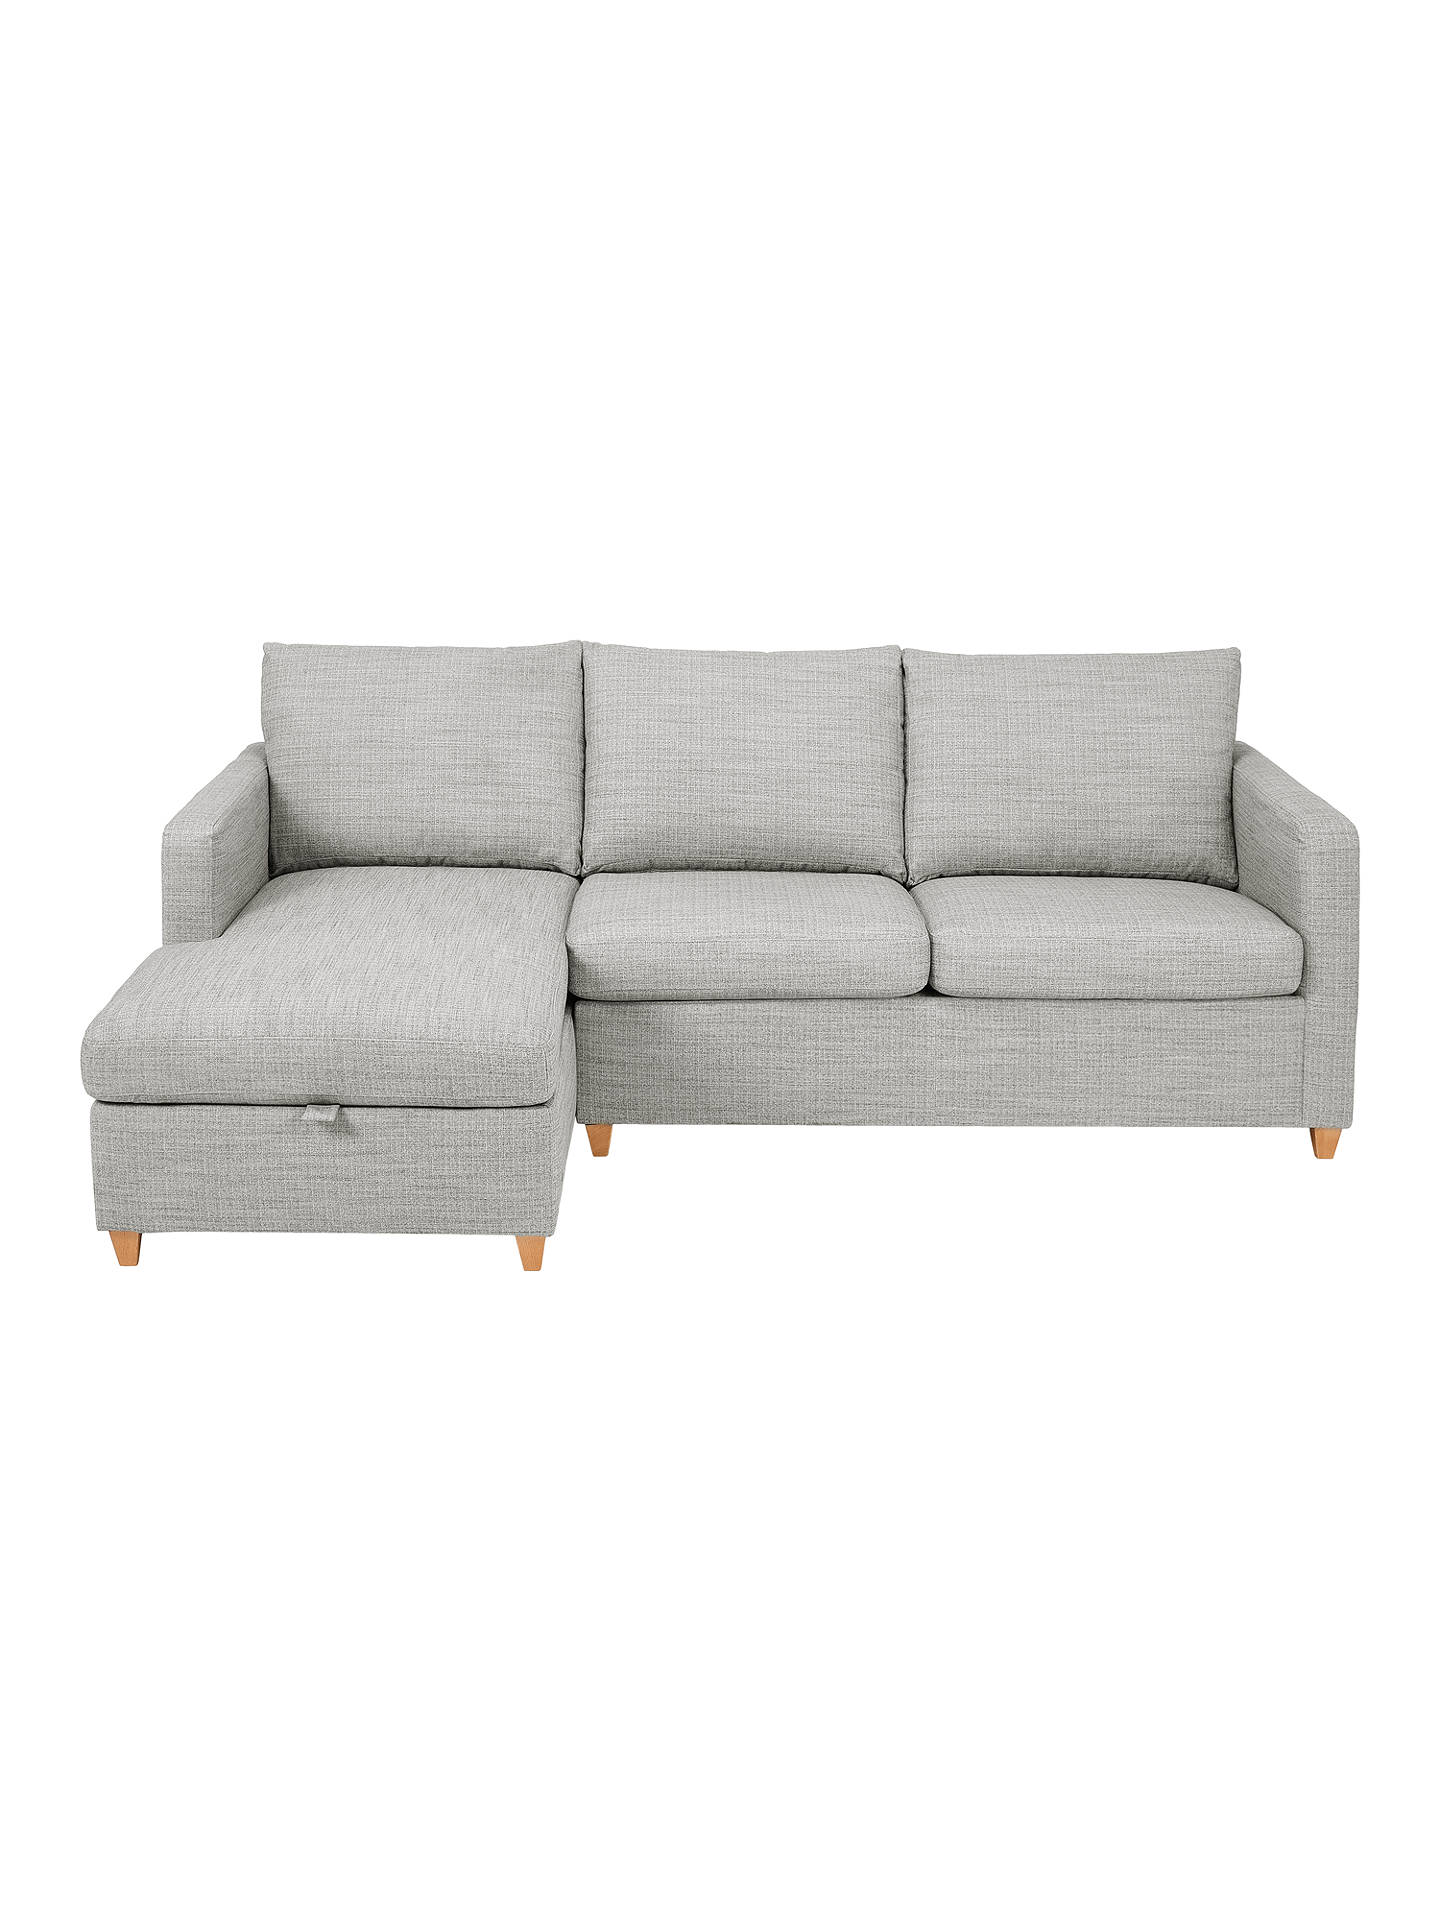 John Lewis & Partners Bailey LHF Chaise End Sofa Bed